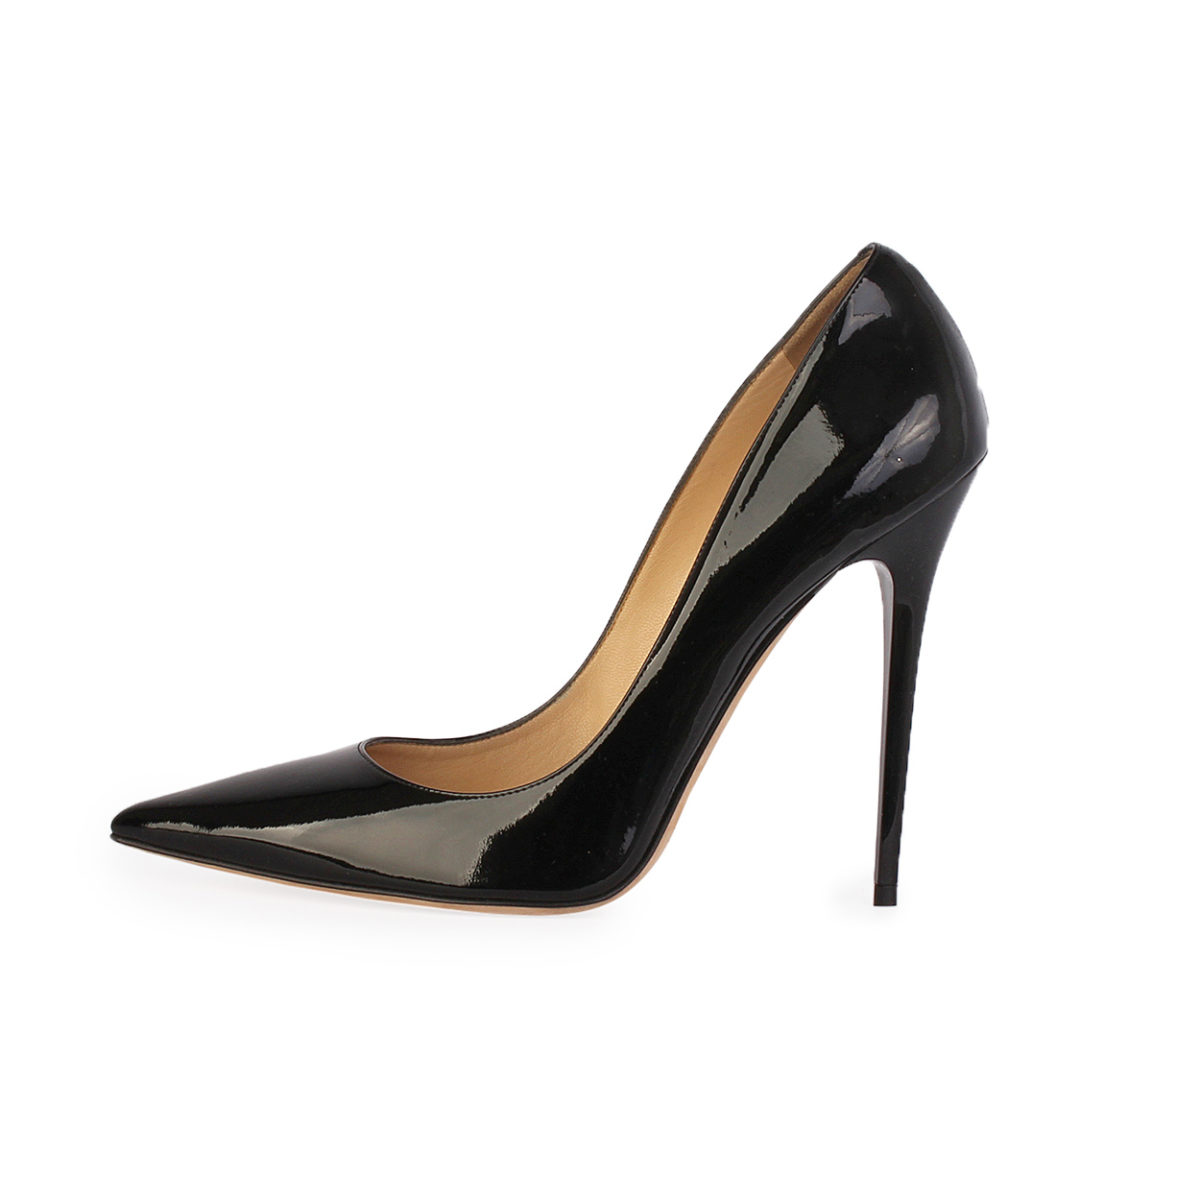 29551c1e9 ... get jimmy choo patent pointy toe pumps 359a8 0bc1c